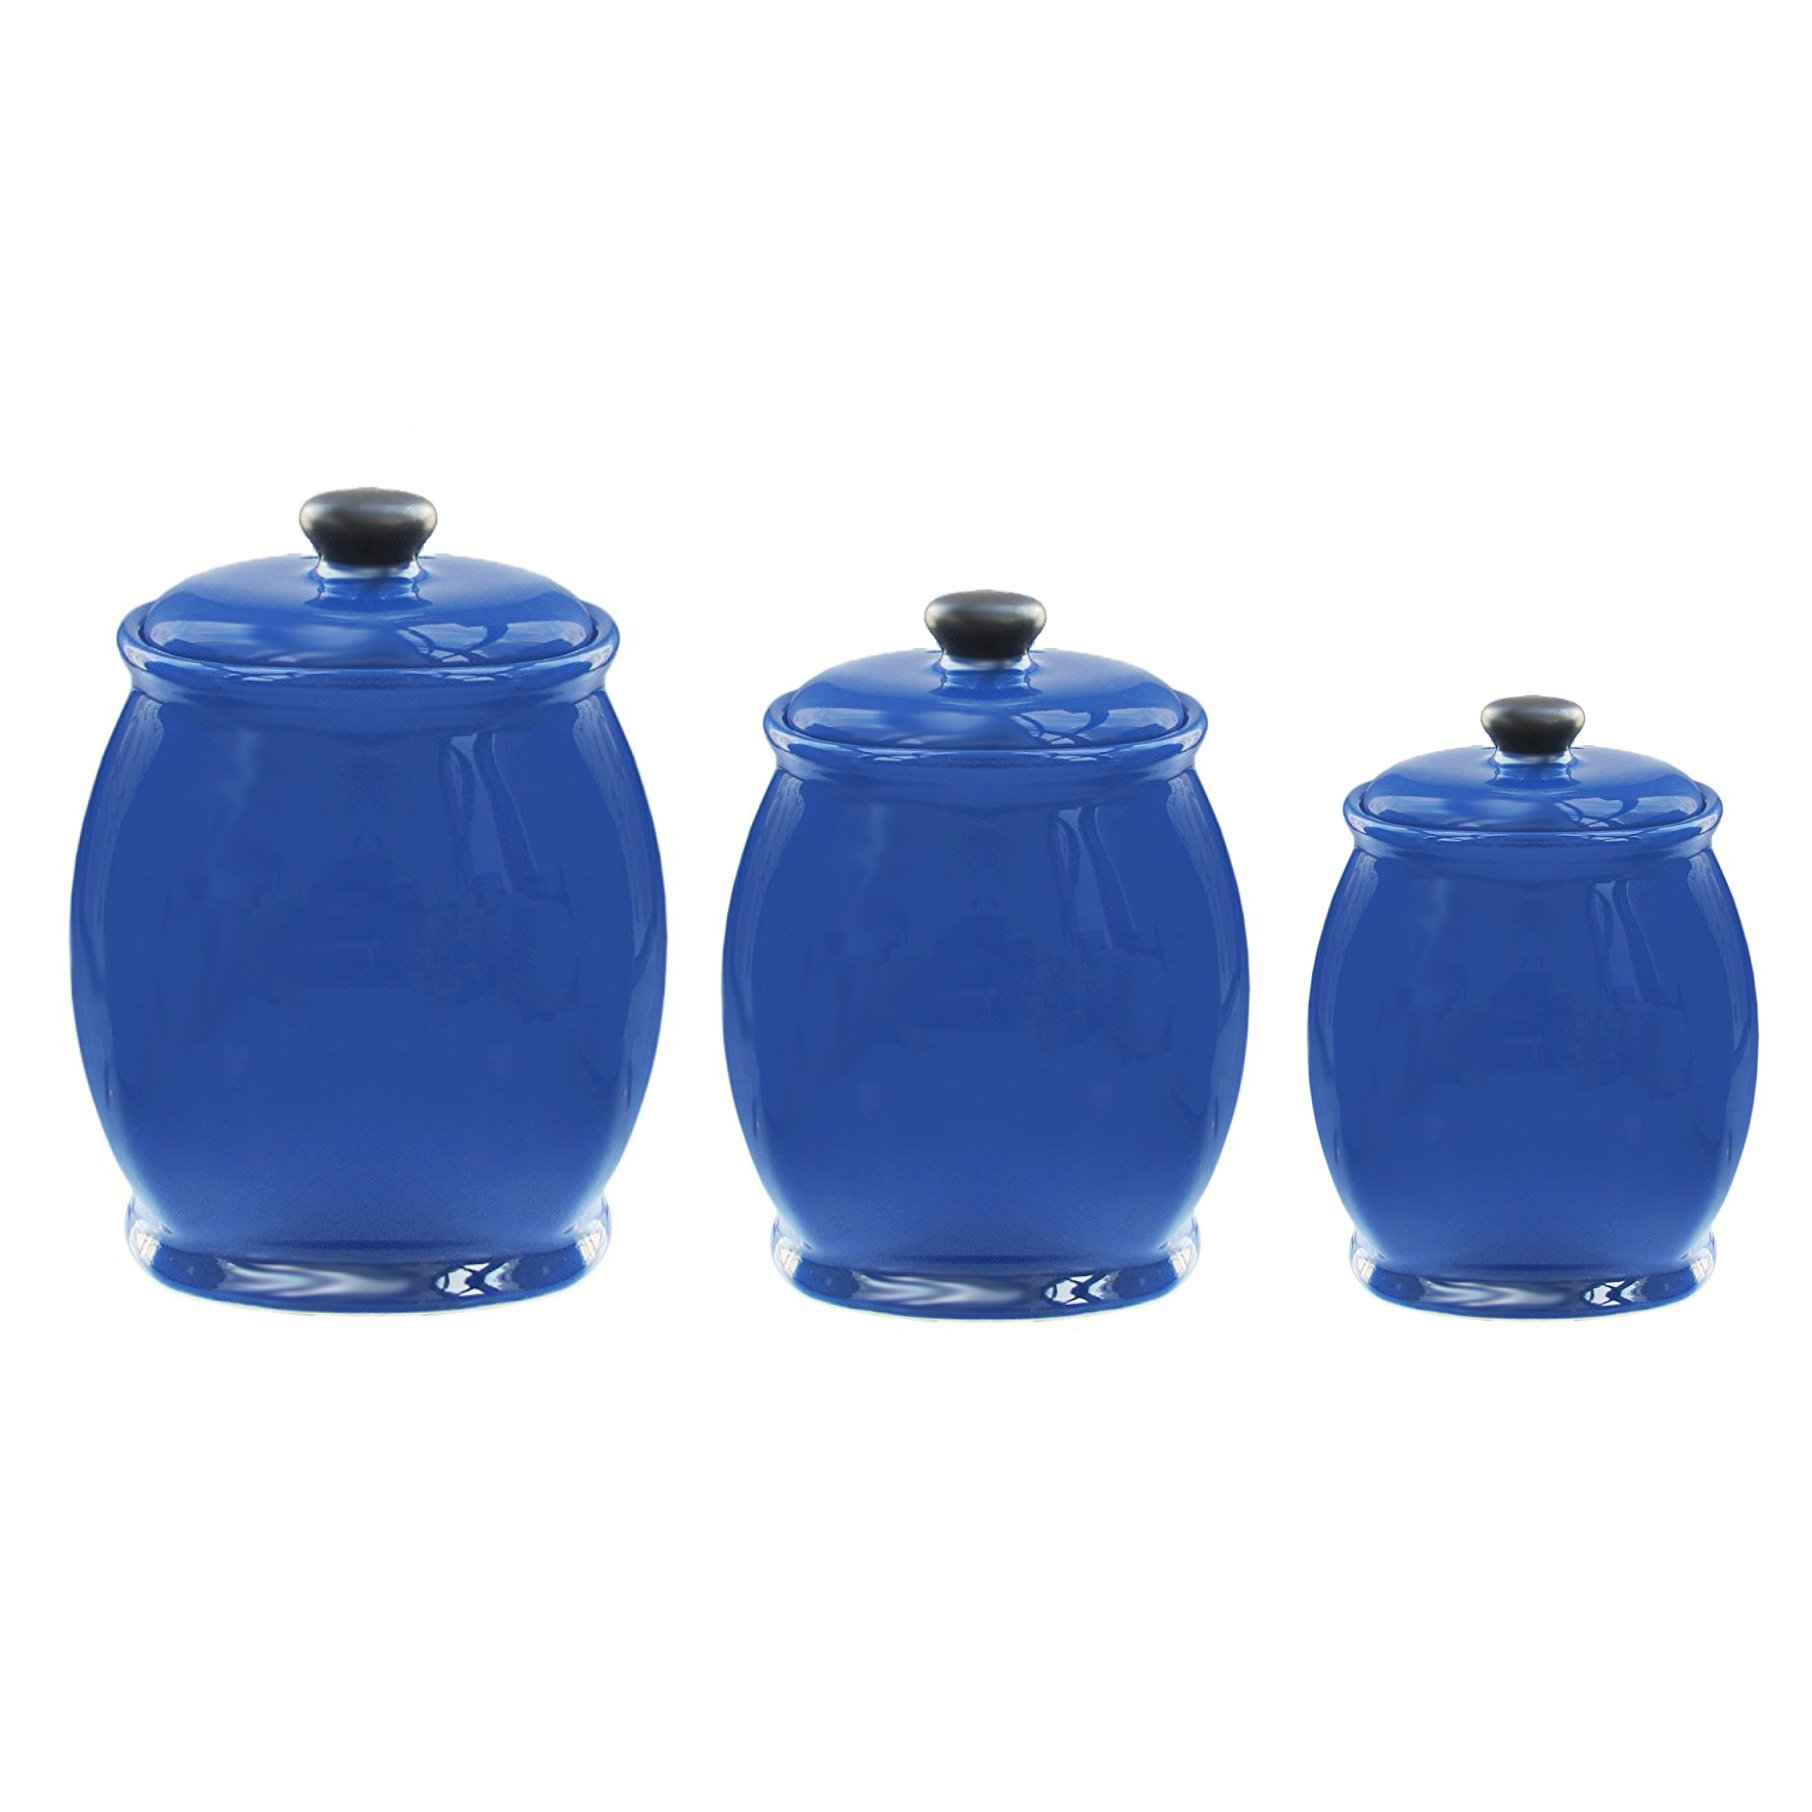 American Atelier Blue 3 Piece Canister Set (Blue - Set of 3)